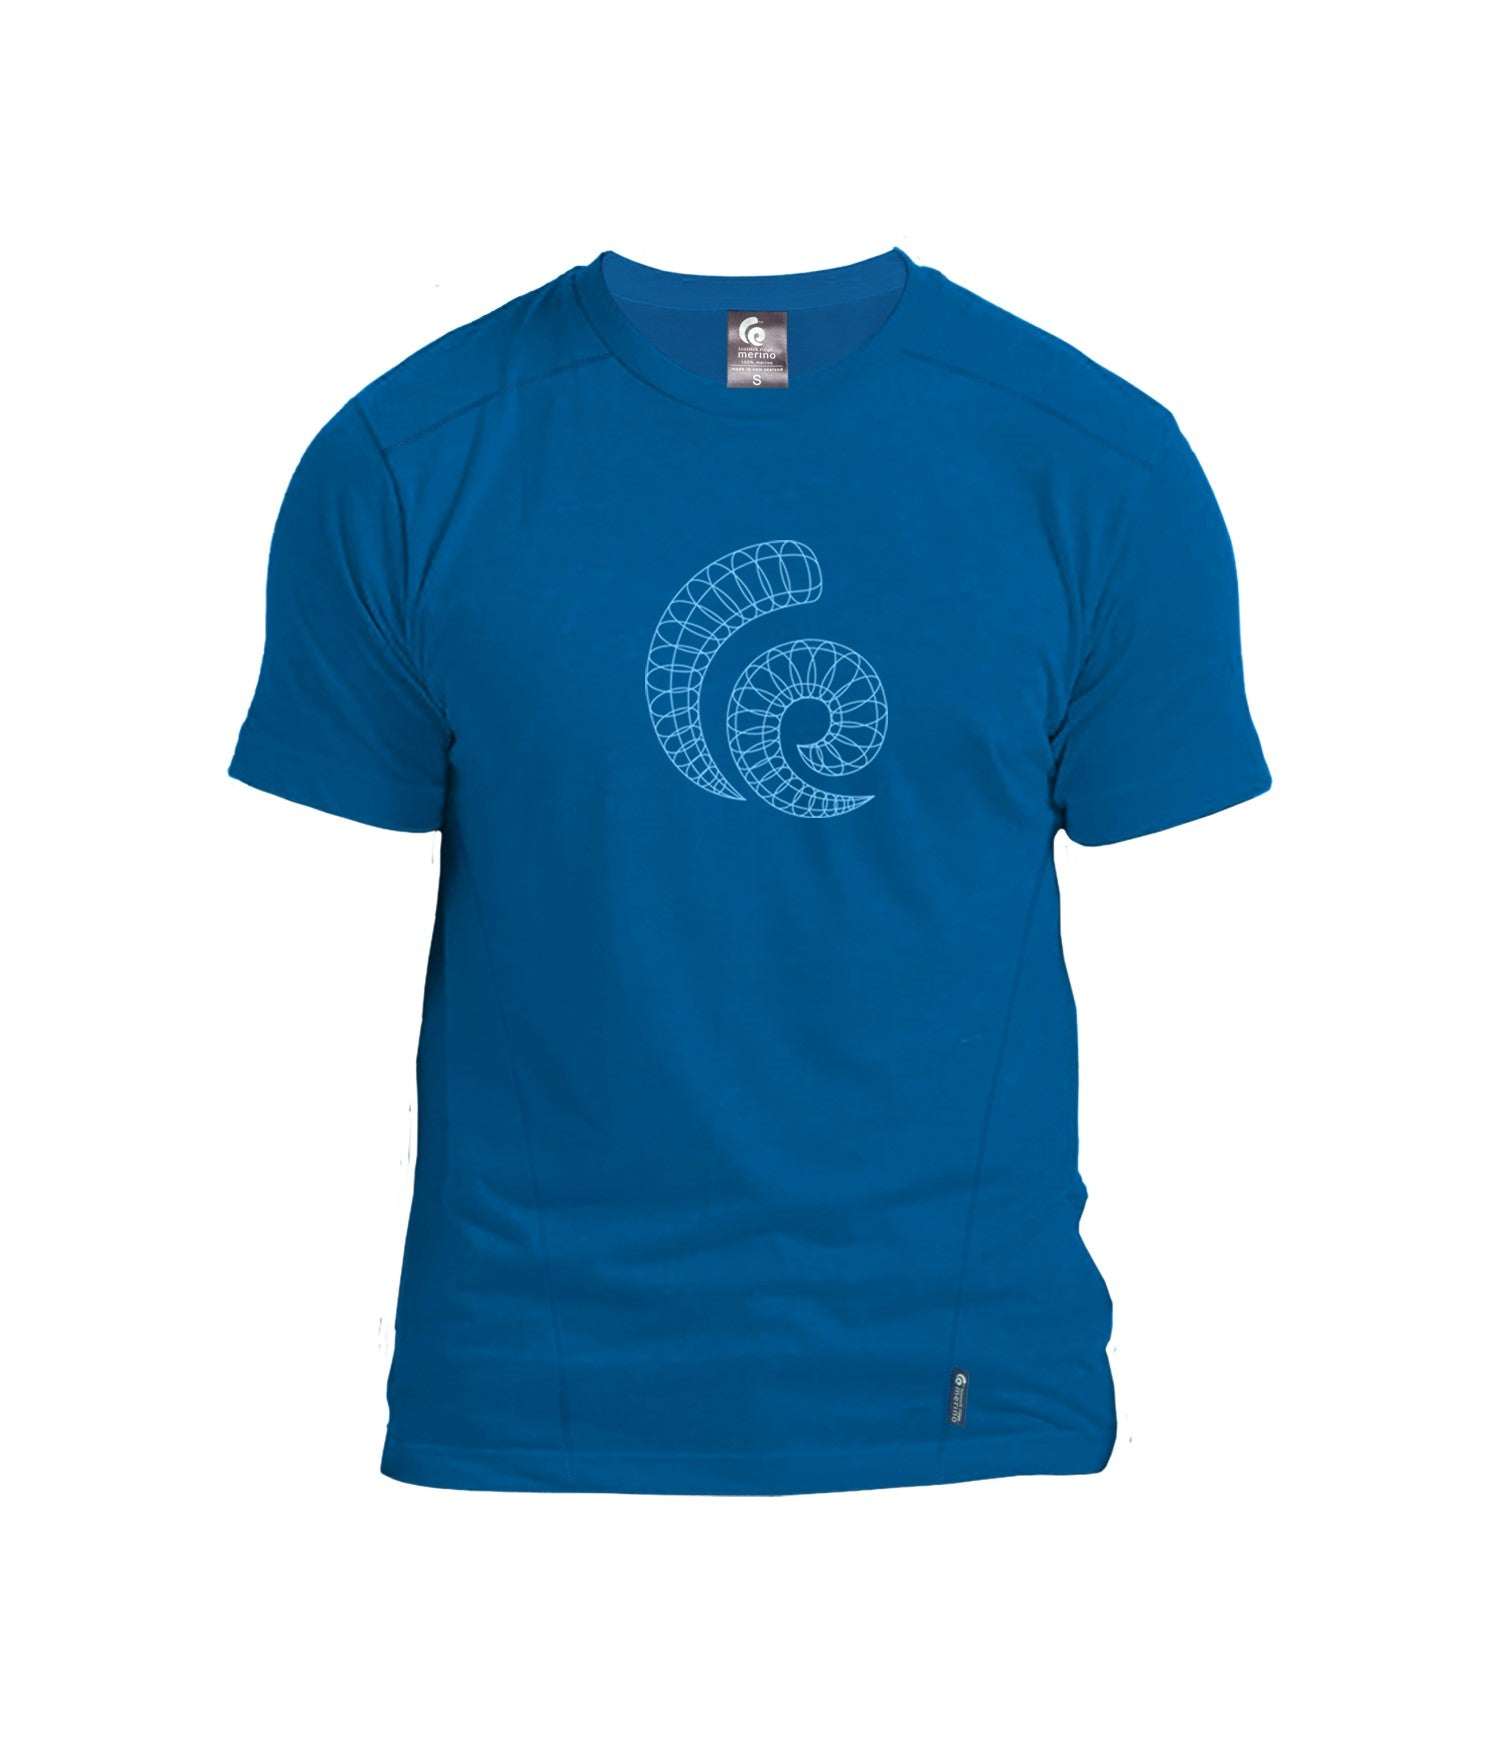 Merino Men's Horns Tee. Made in New Zealand